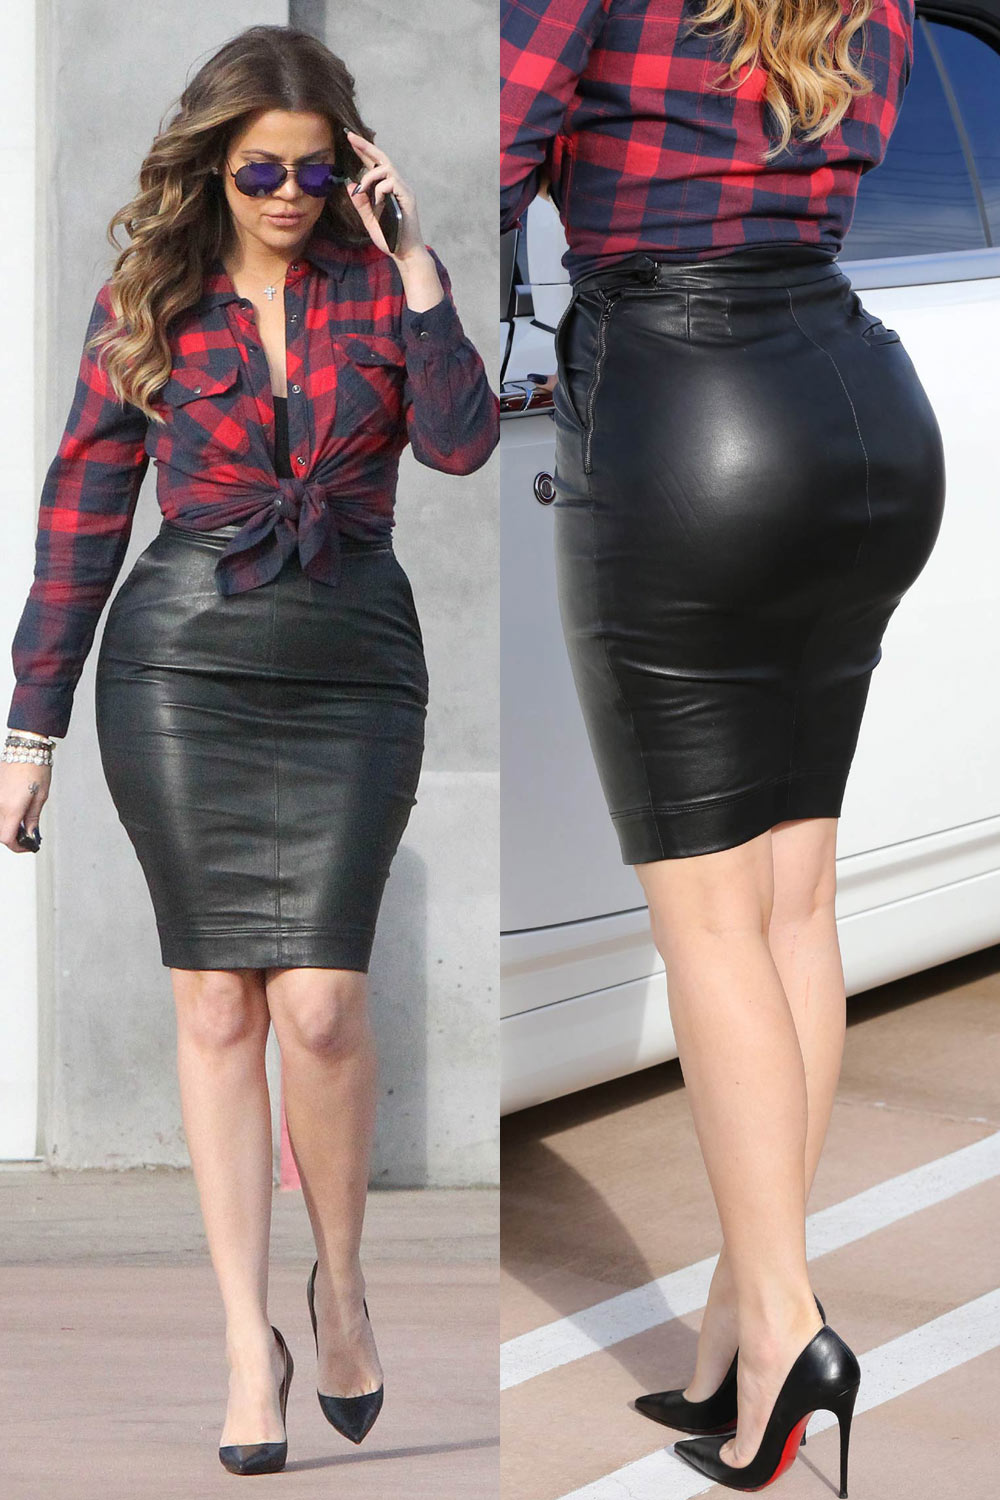 Khloe Kardashian Rocks A Tight Black Leather Skirt While Filming In